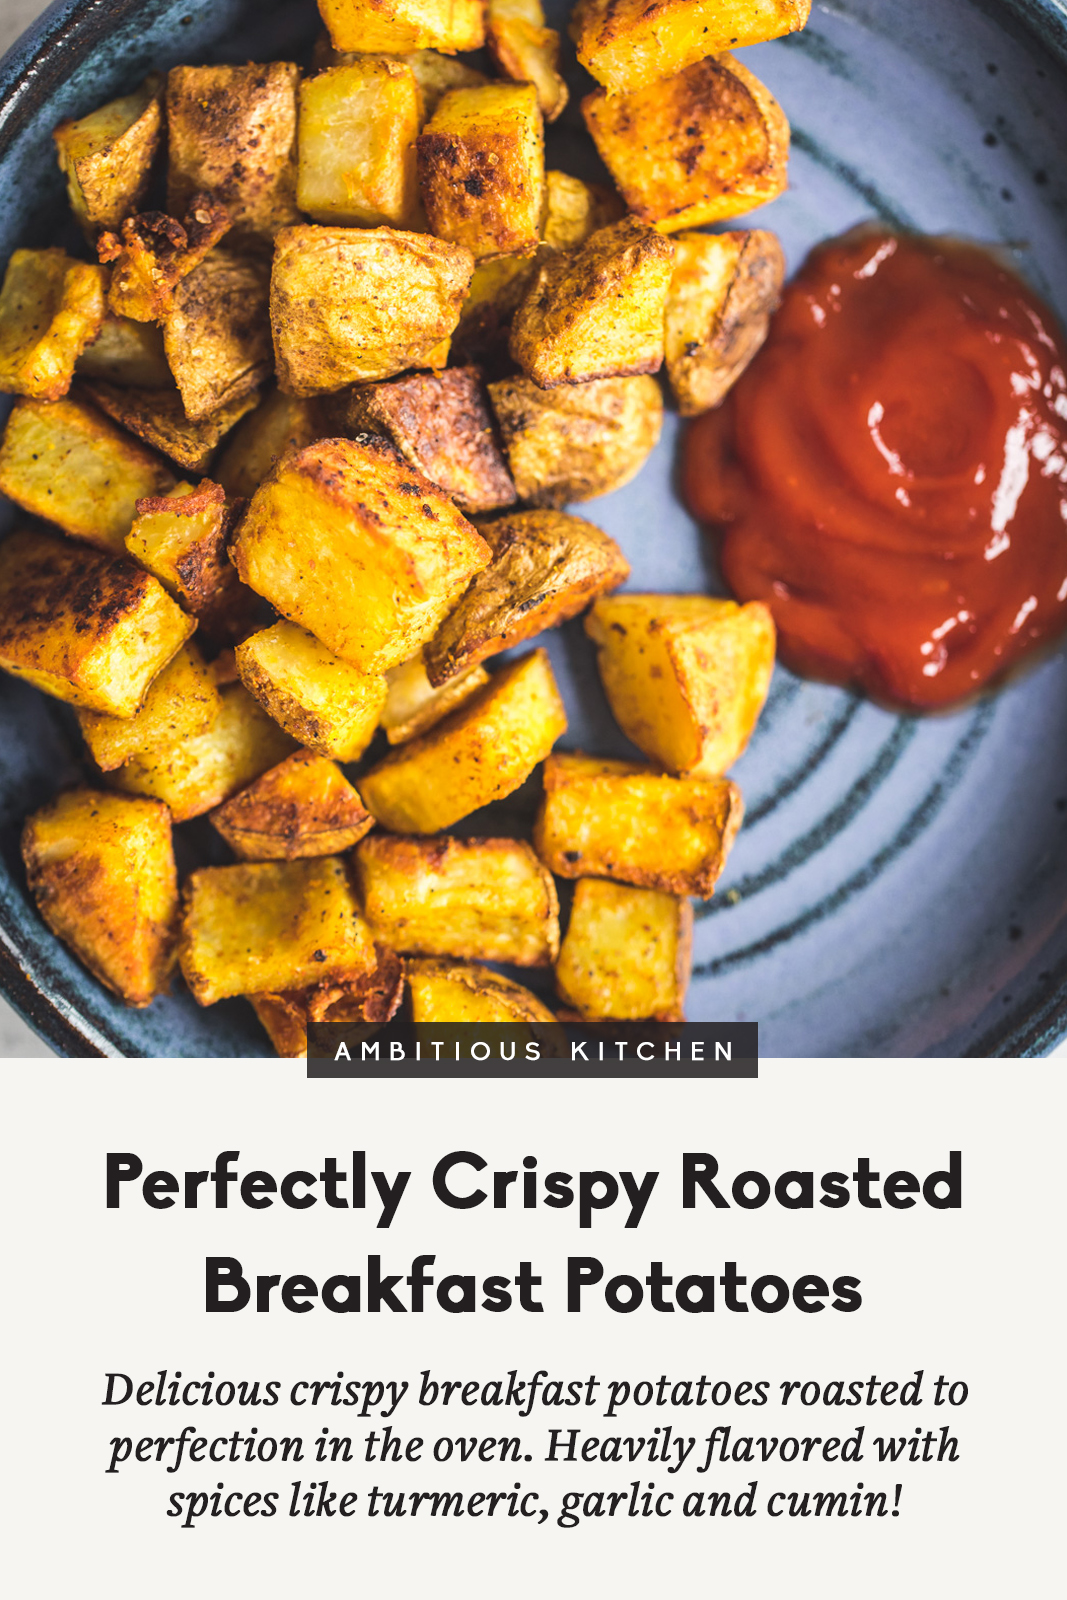 crispy roasted breakfast potatoes on a plate with ketchup and a title underneath